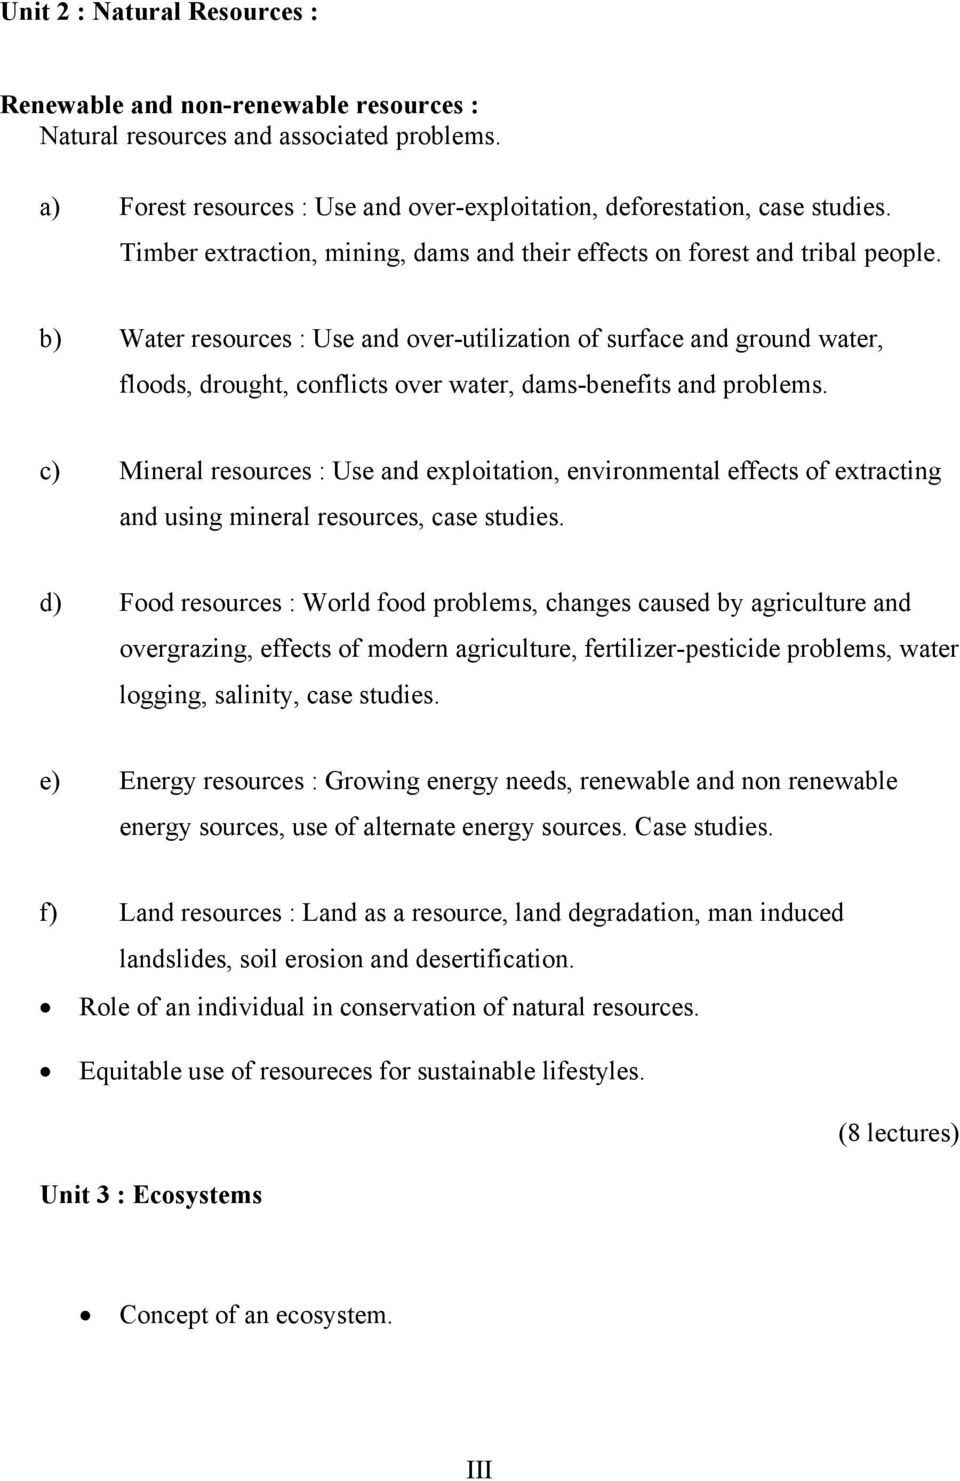 Worksheets Renewable And Nonrenewable Resources Worksheet advantages for non renewable energy ace resources definition differences worksheet and disadvantages of soil erosion cimmyt